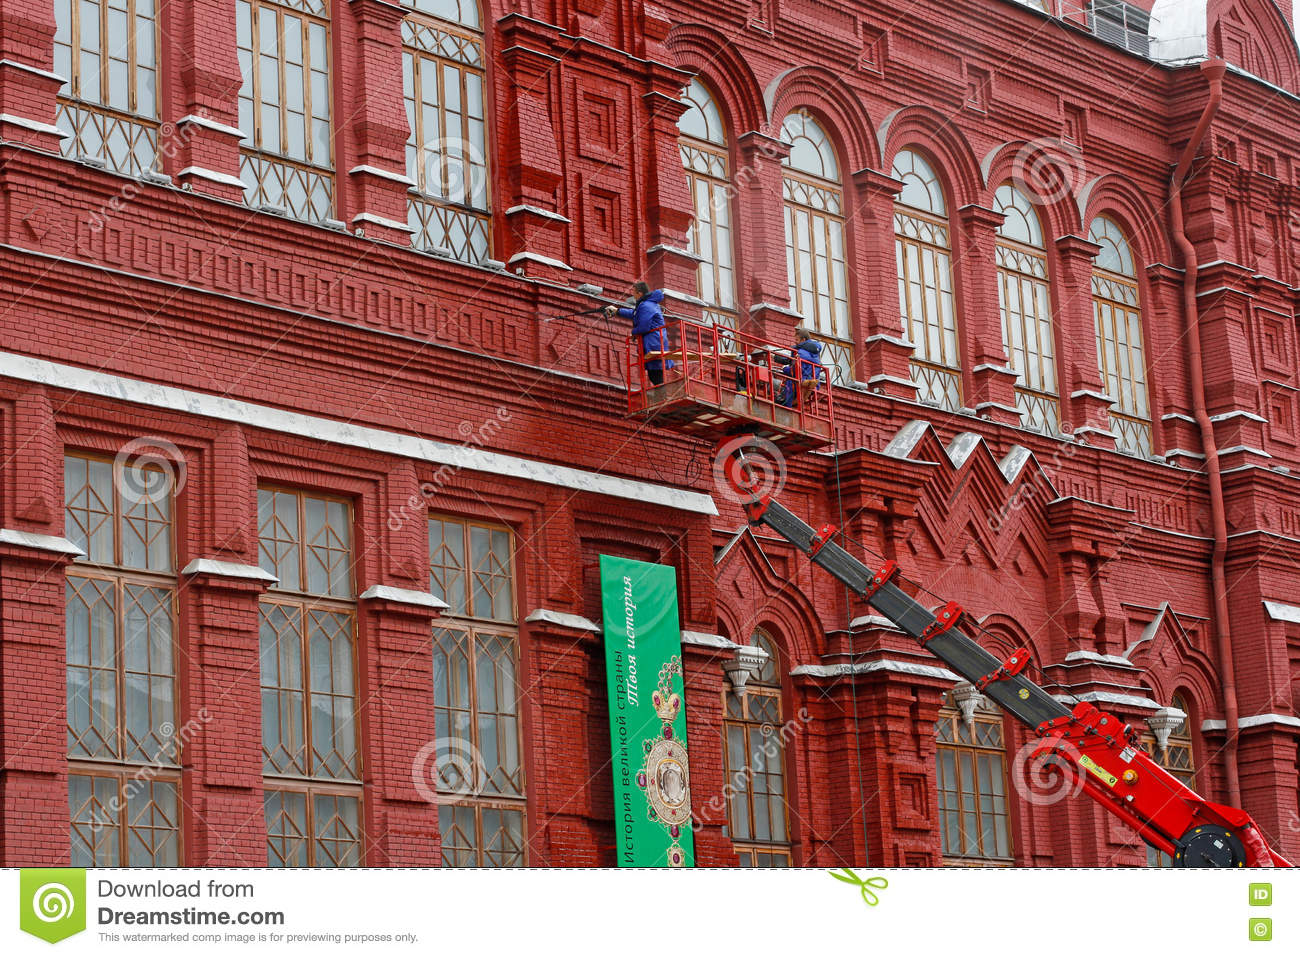 Where to wash Moscow